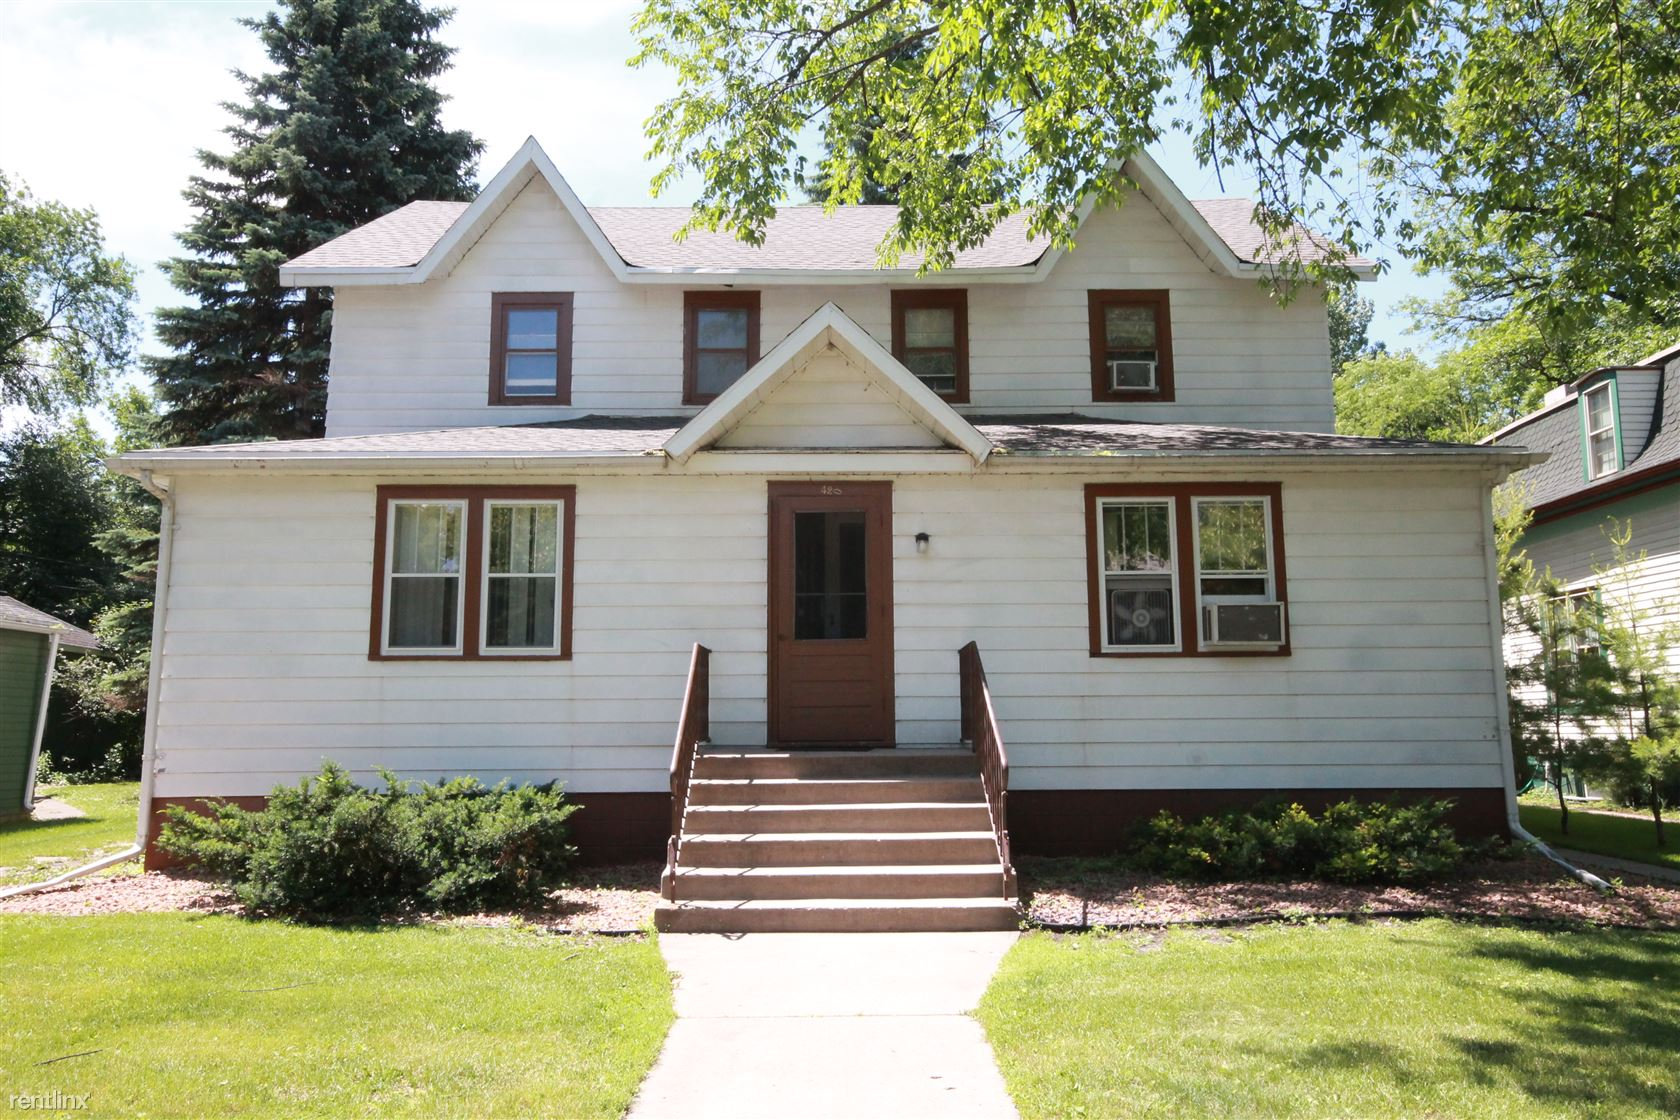 420 S 6th St, Grand Forks, ND - $550